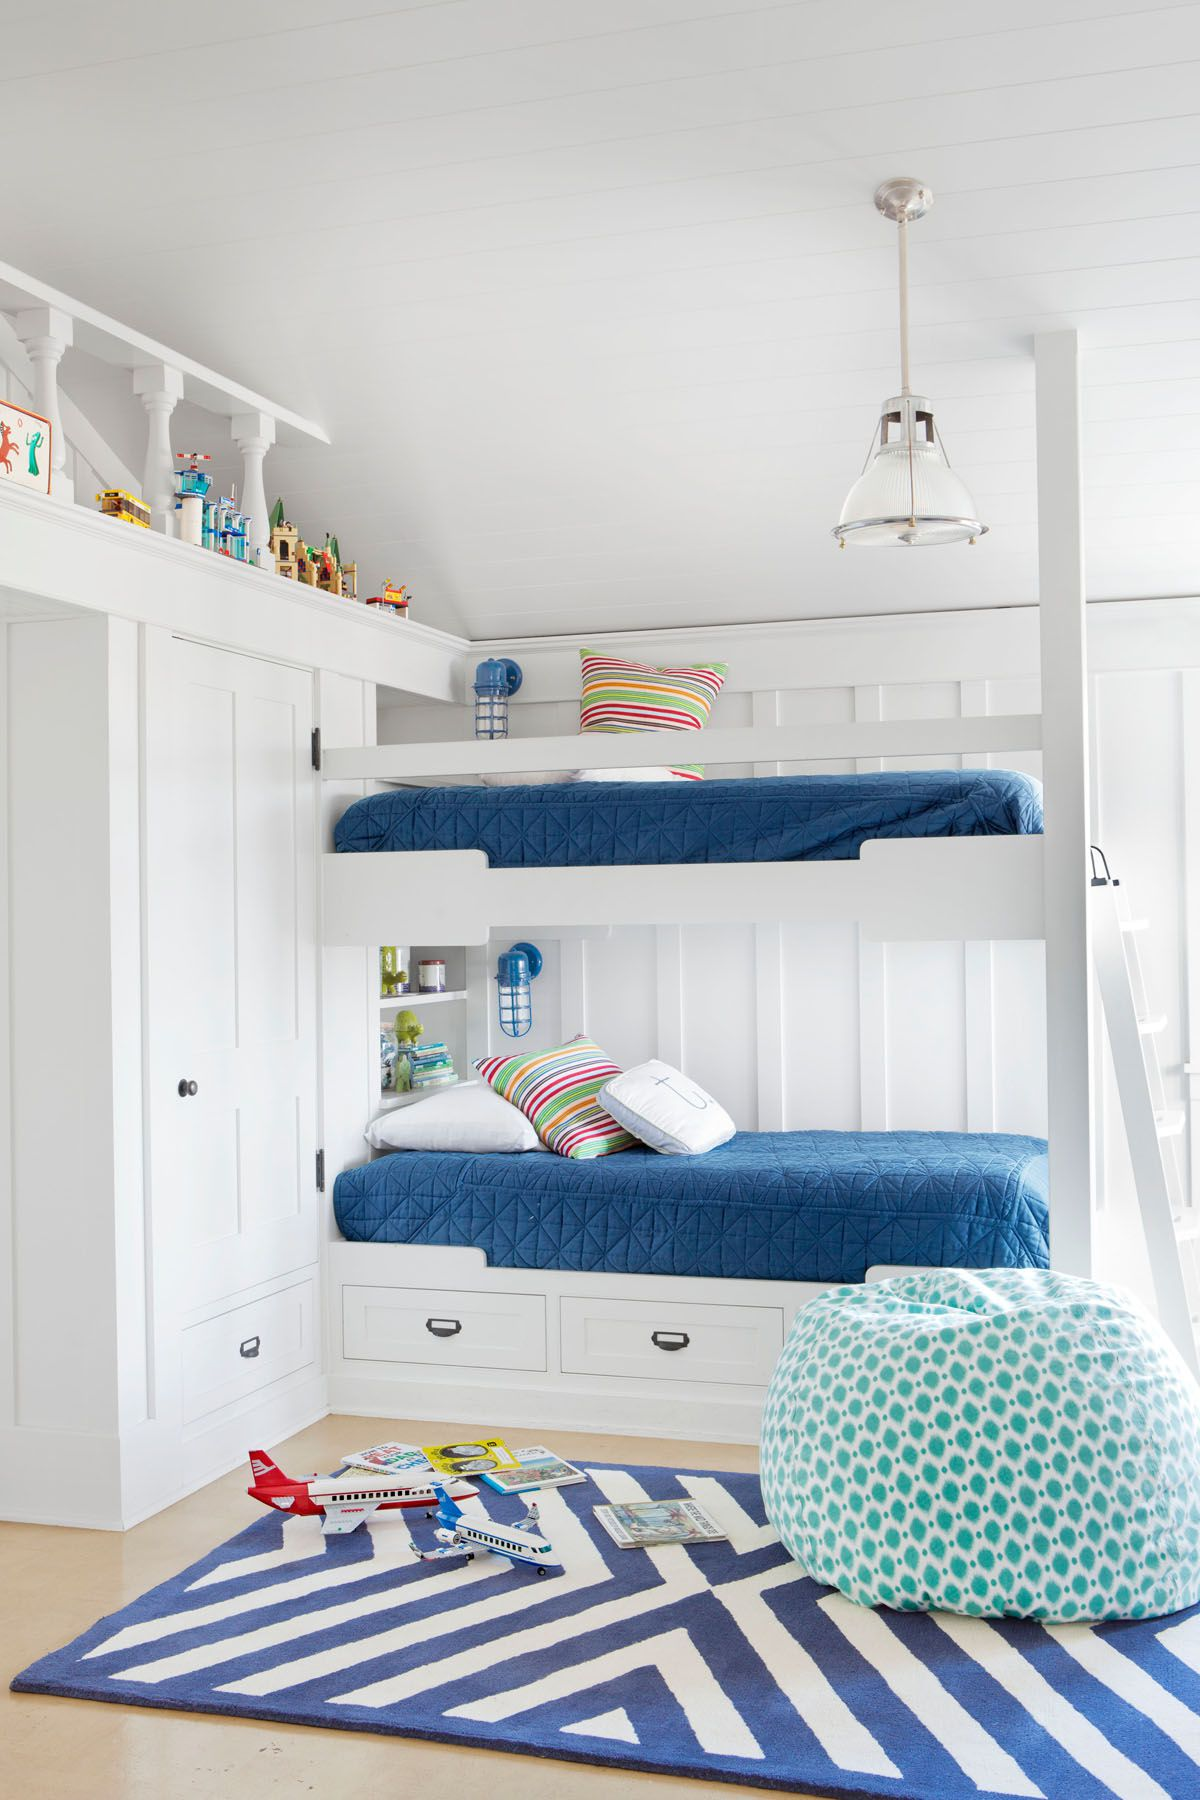 14 Best Boys Bedroom Ideas - Room Decor and Themes for a Little or